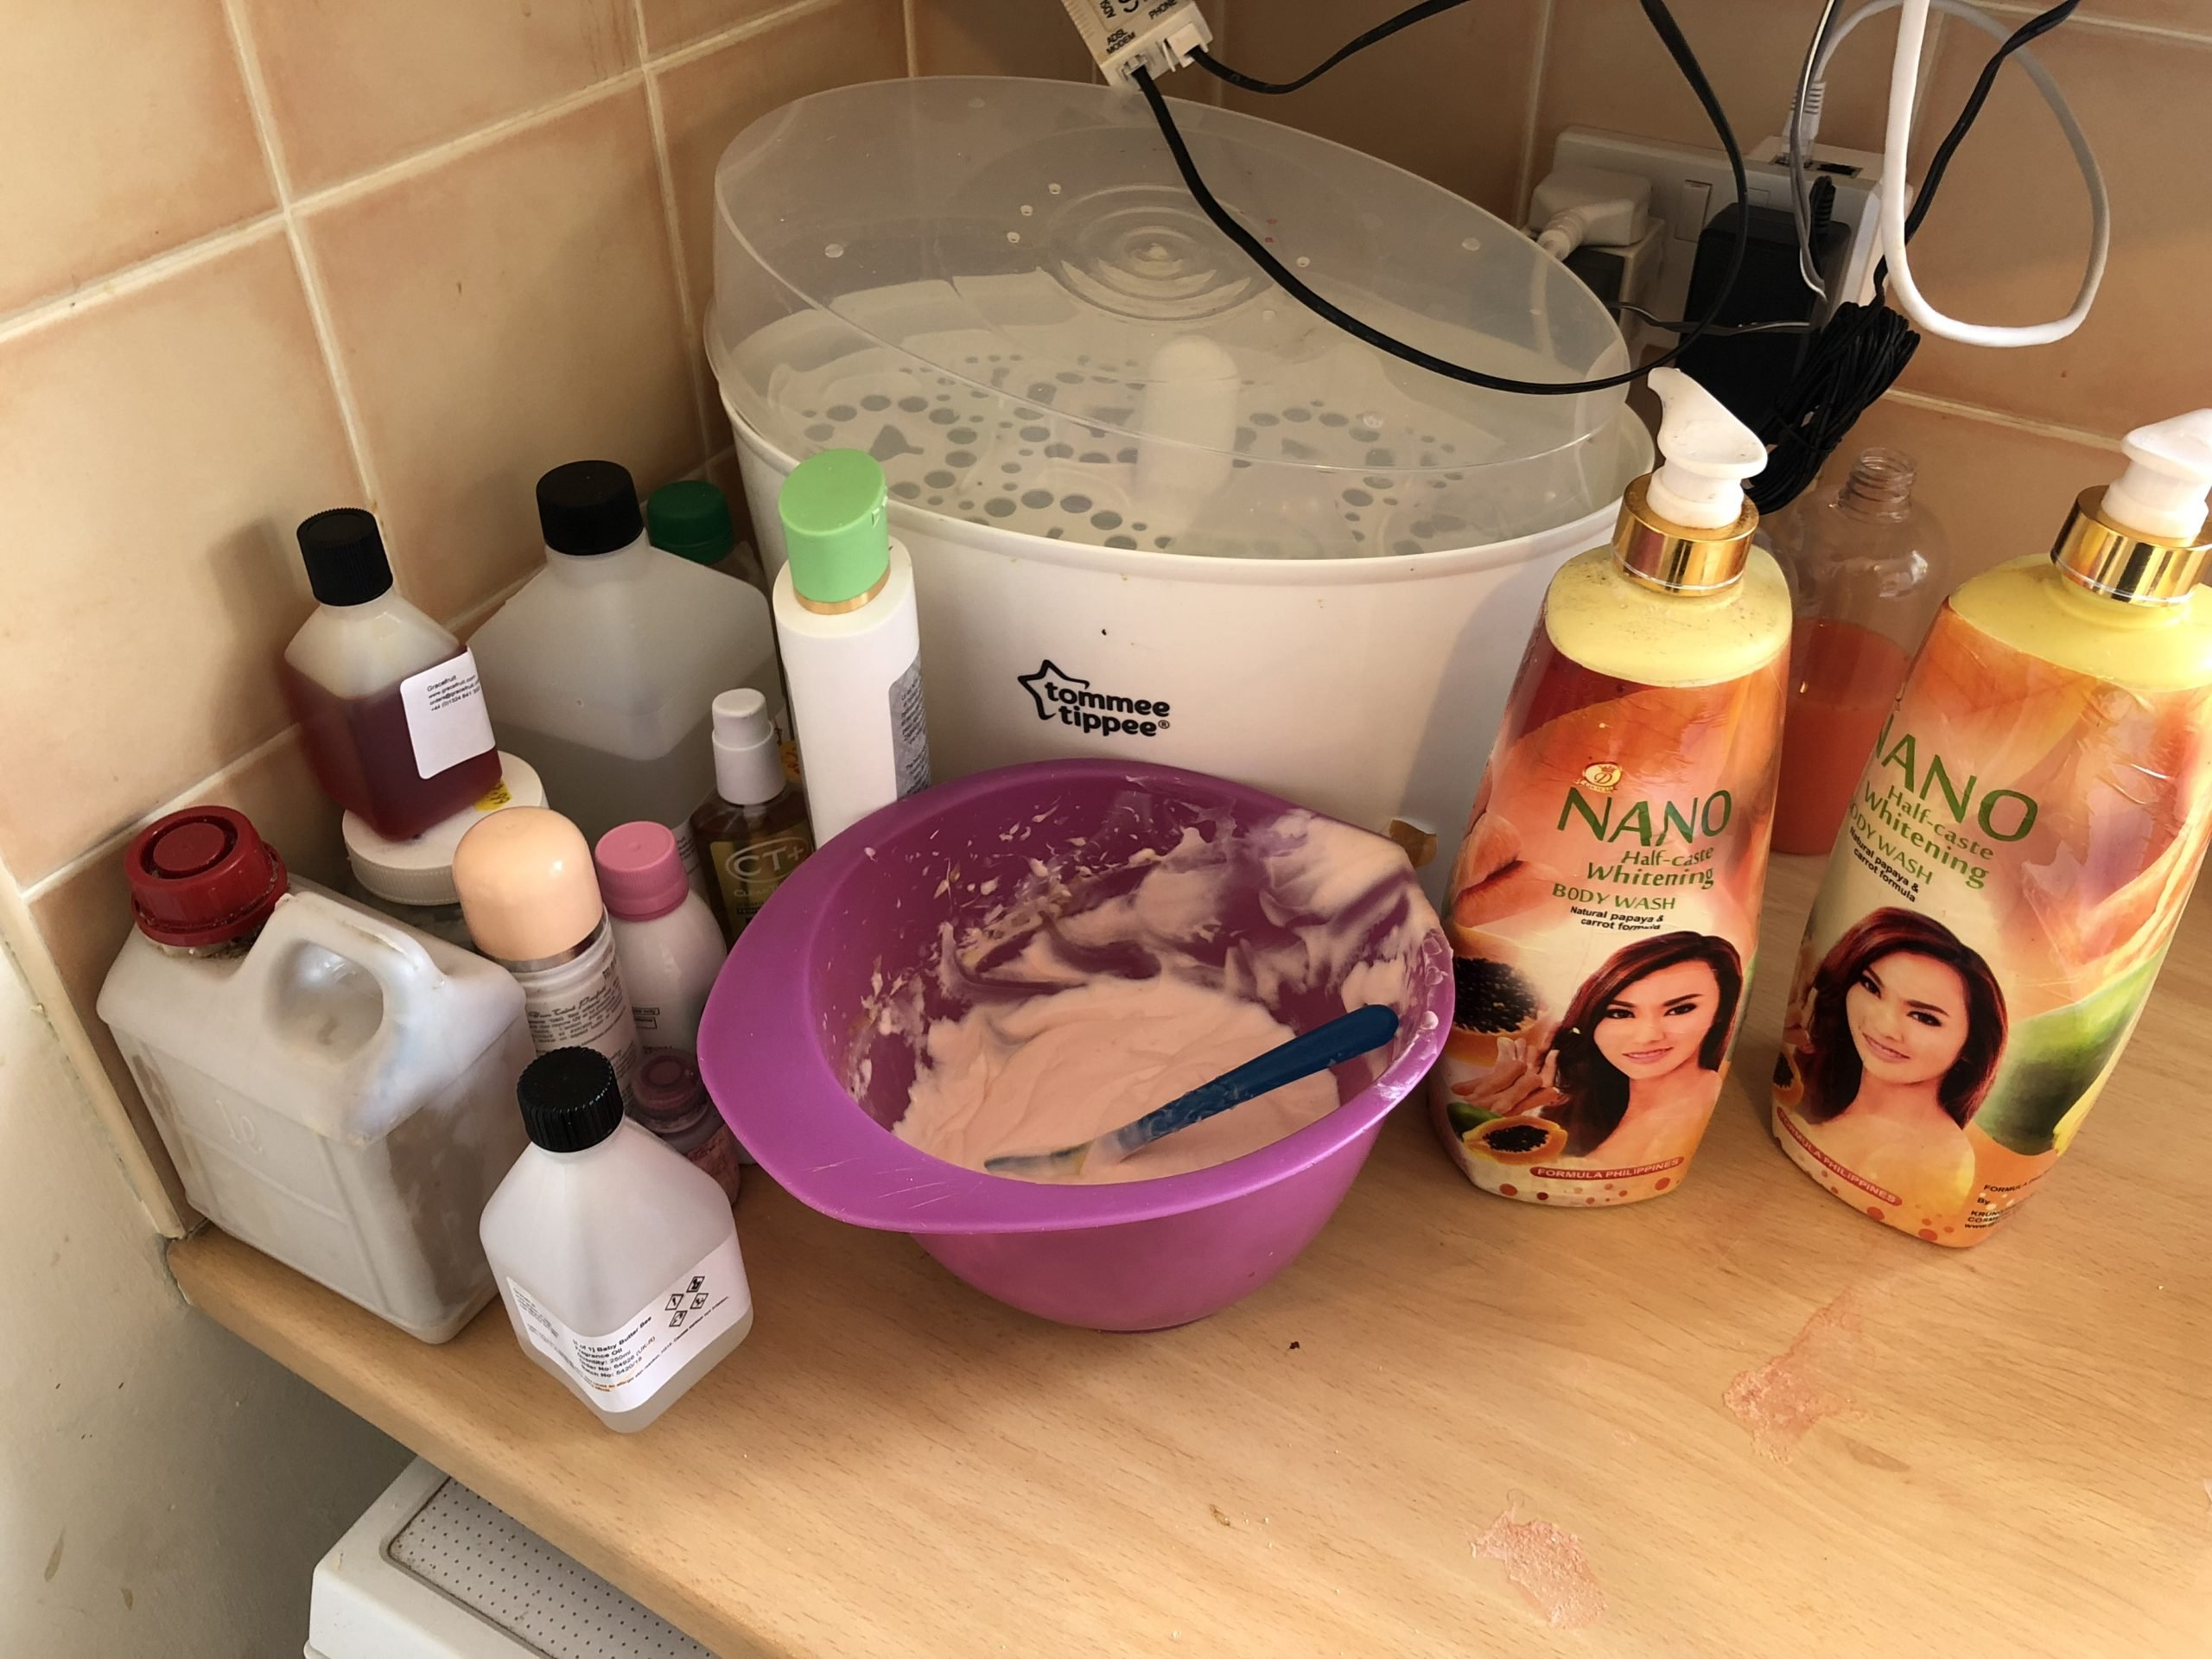 Dangers Of Using Concocted Skin Whitening Products?